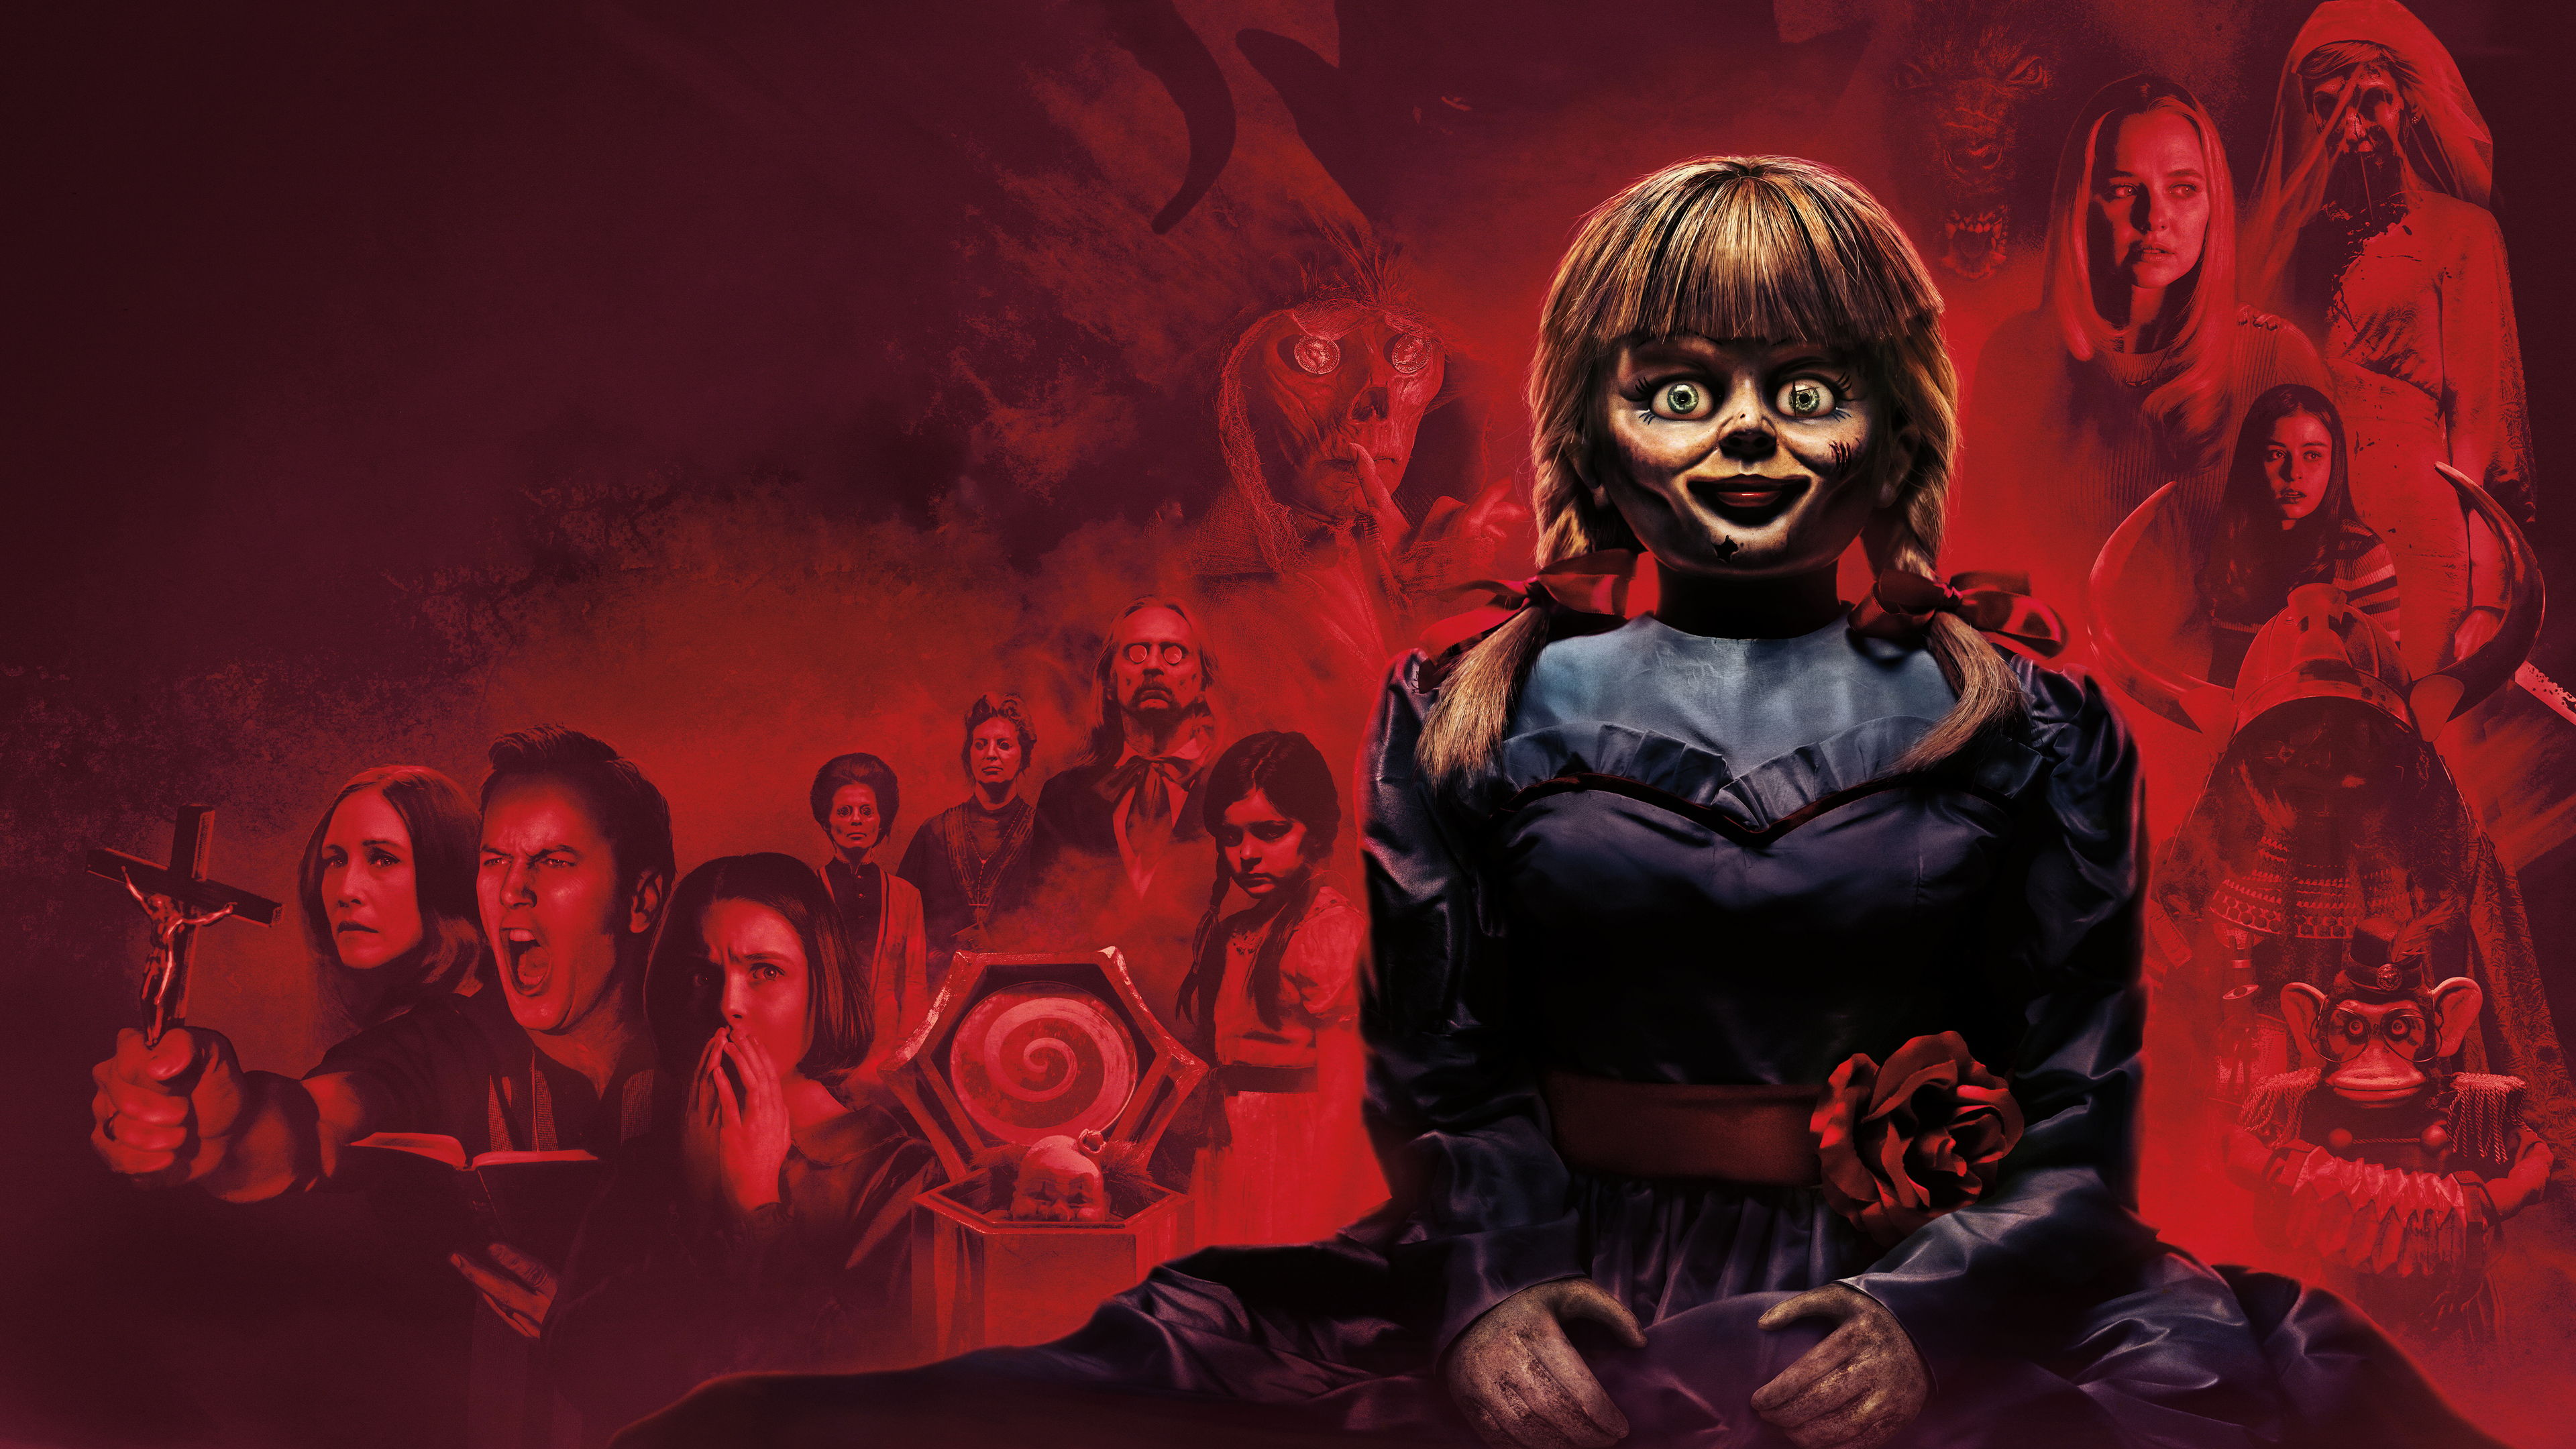 annabelle comes home 2019 1562106999 - Annabelle Comes Home 2019 - movies wallpapers, hd-wallpapers, annabelle comes home wallpapers, 5k wallpapers, 4k-wallpapers, 2019 movies wallpapers